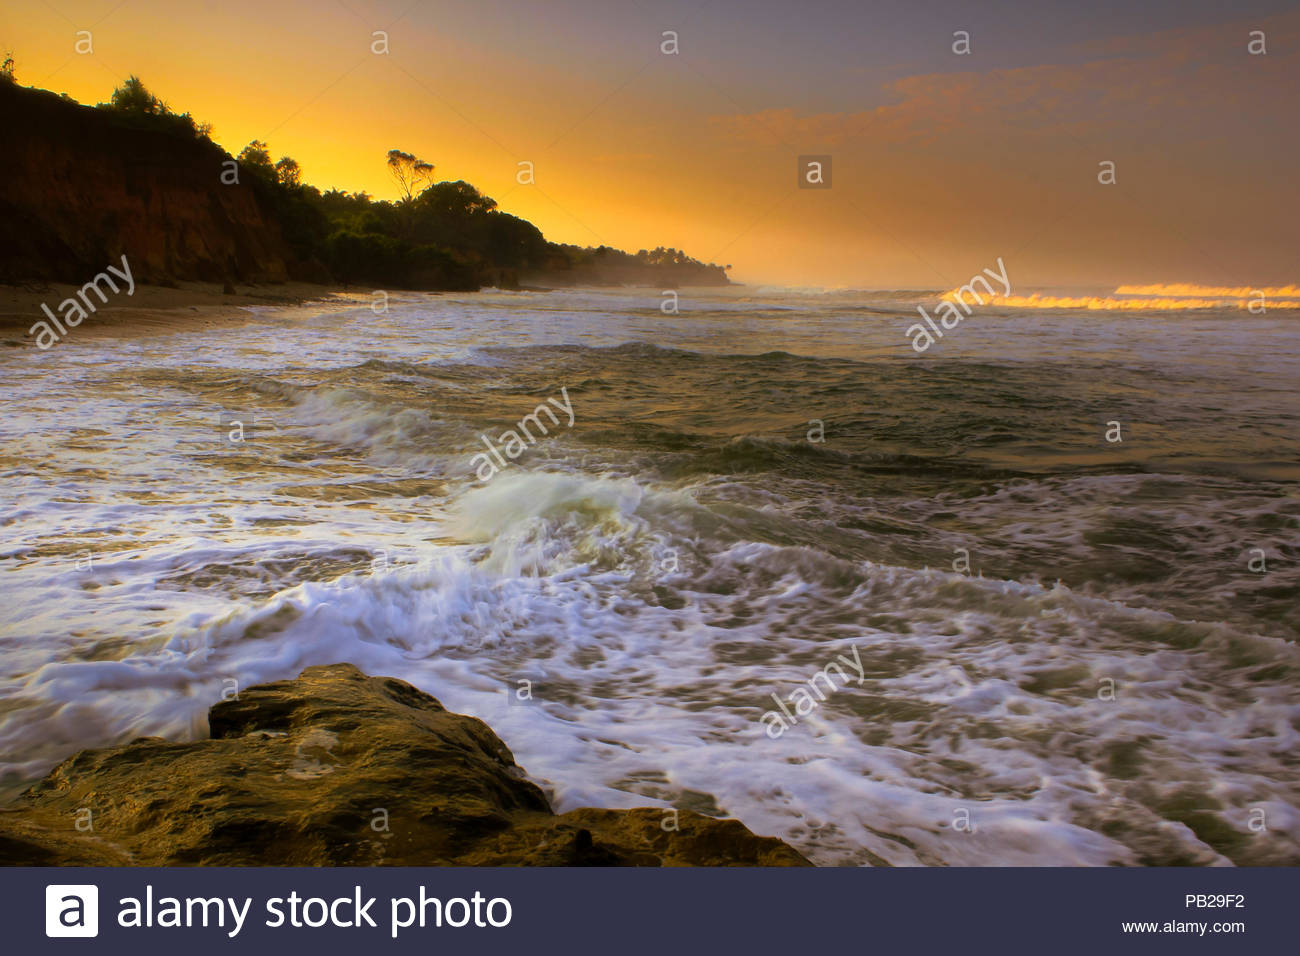 waterscapes - Stock Image